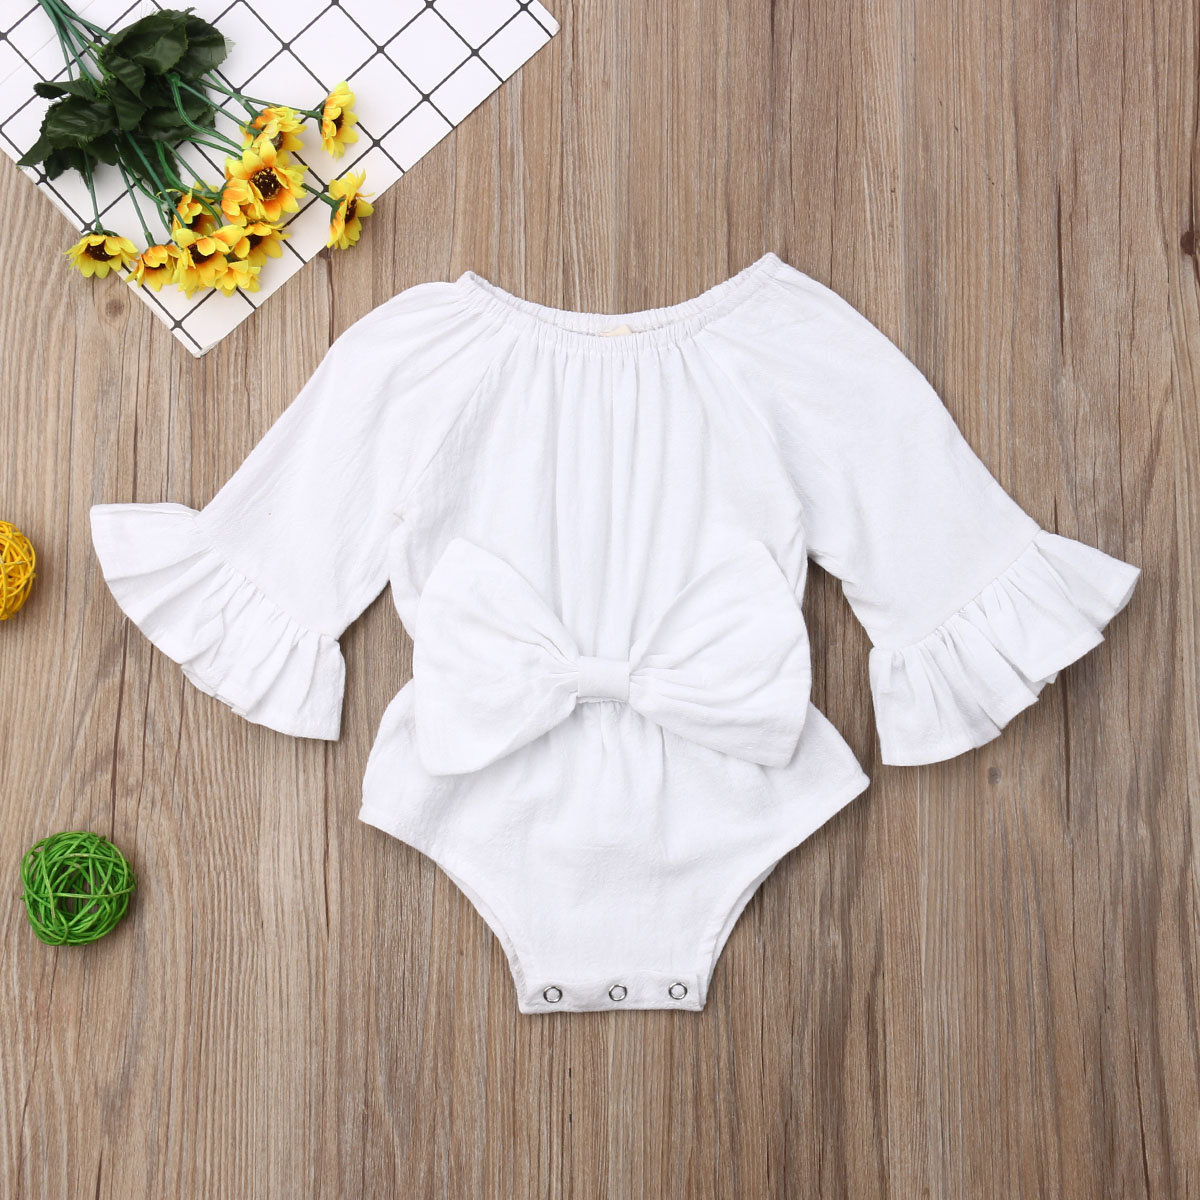 Pudcoco Newborn Baby Girl Clothes Solid Color Long Sleeve Bowknot Receive The Waist Cotton Romper Jumpsuit One-Piece Outfit Set